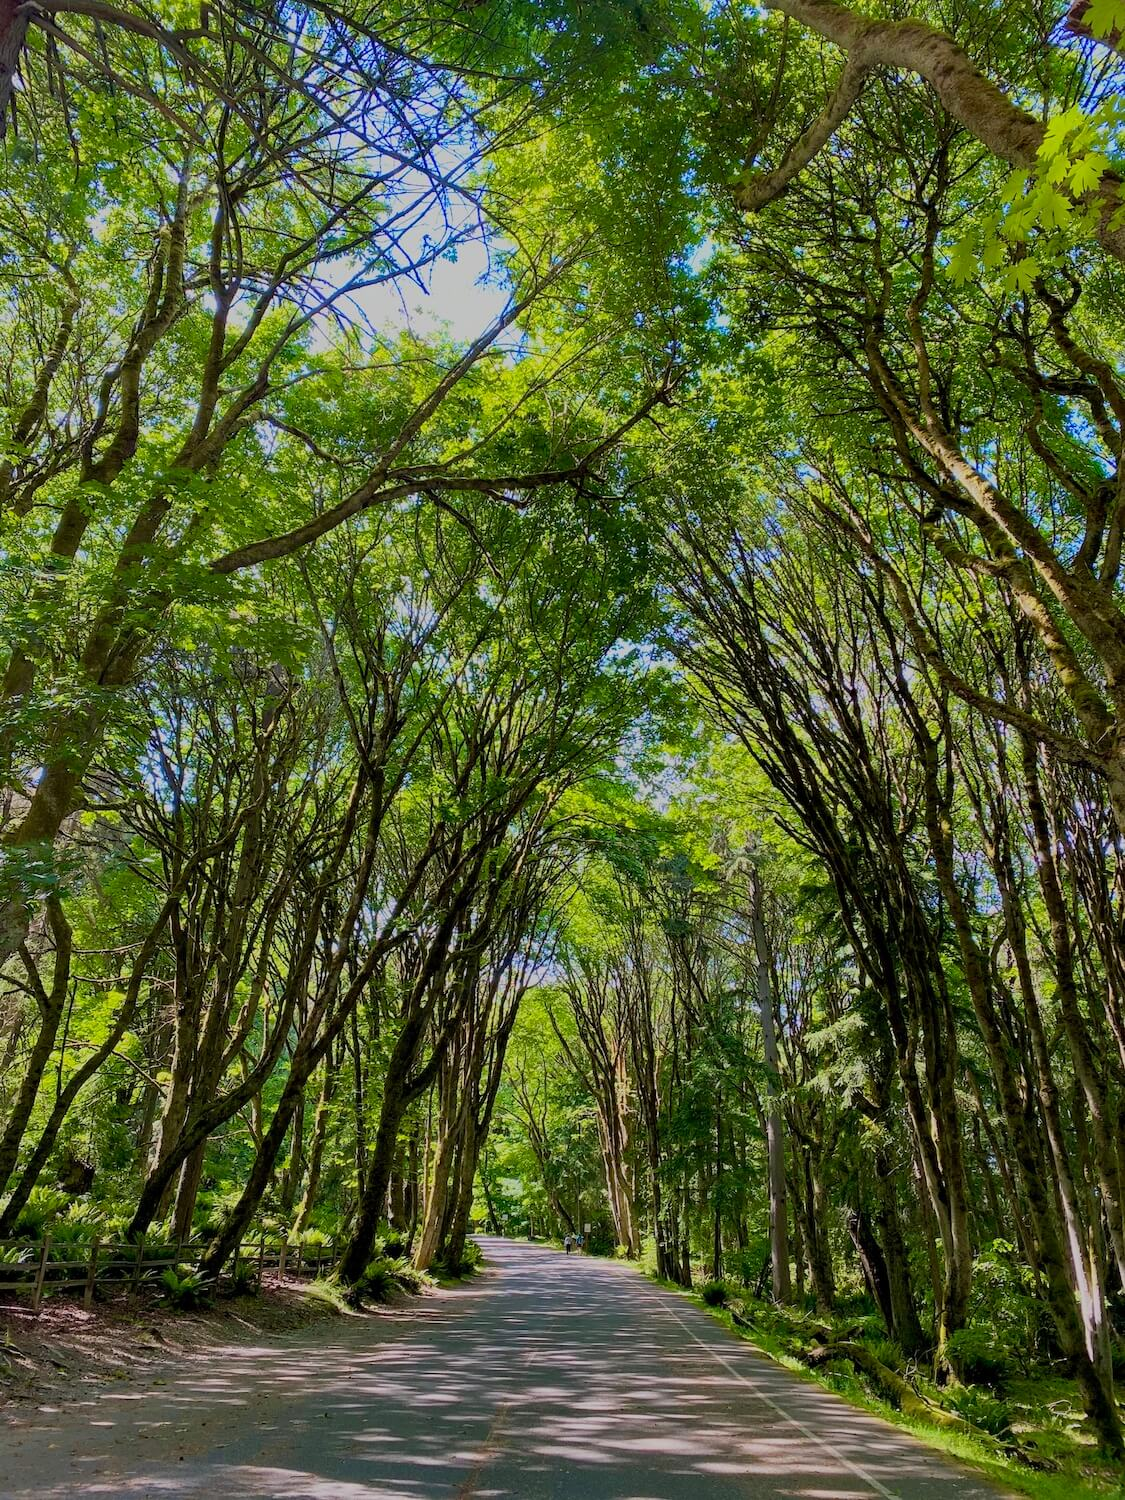 A photo of the stunning green foliage of the maple trees along five mile drive in Point Defiance Park.  The roadway go straight through trees reaching up to the heavens, creating a rich canopy with a few patches of blue sky.